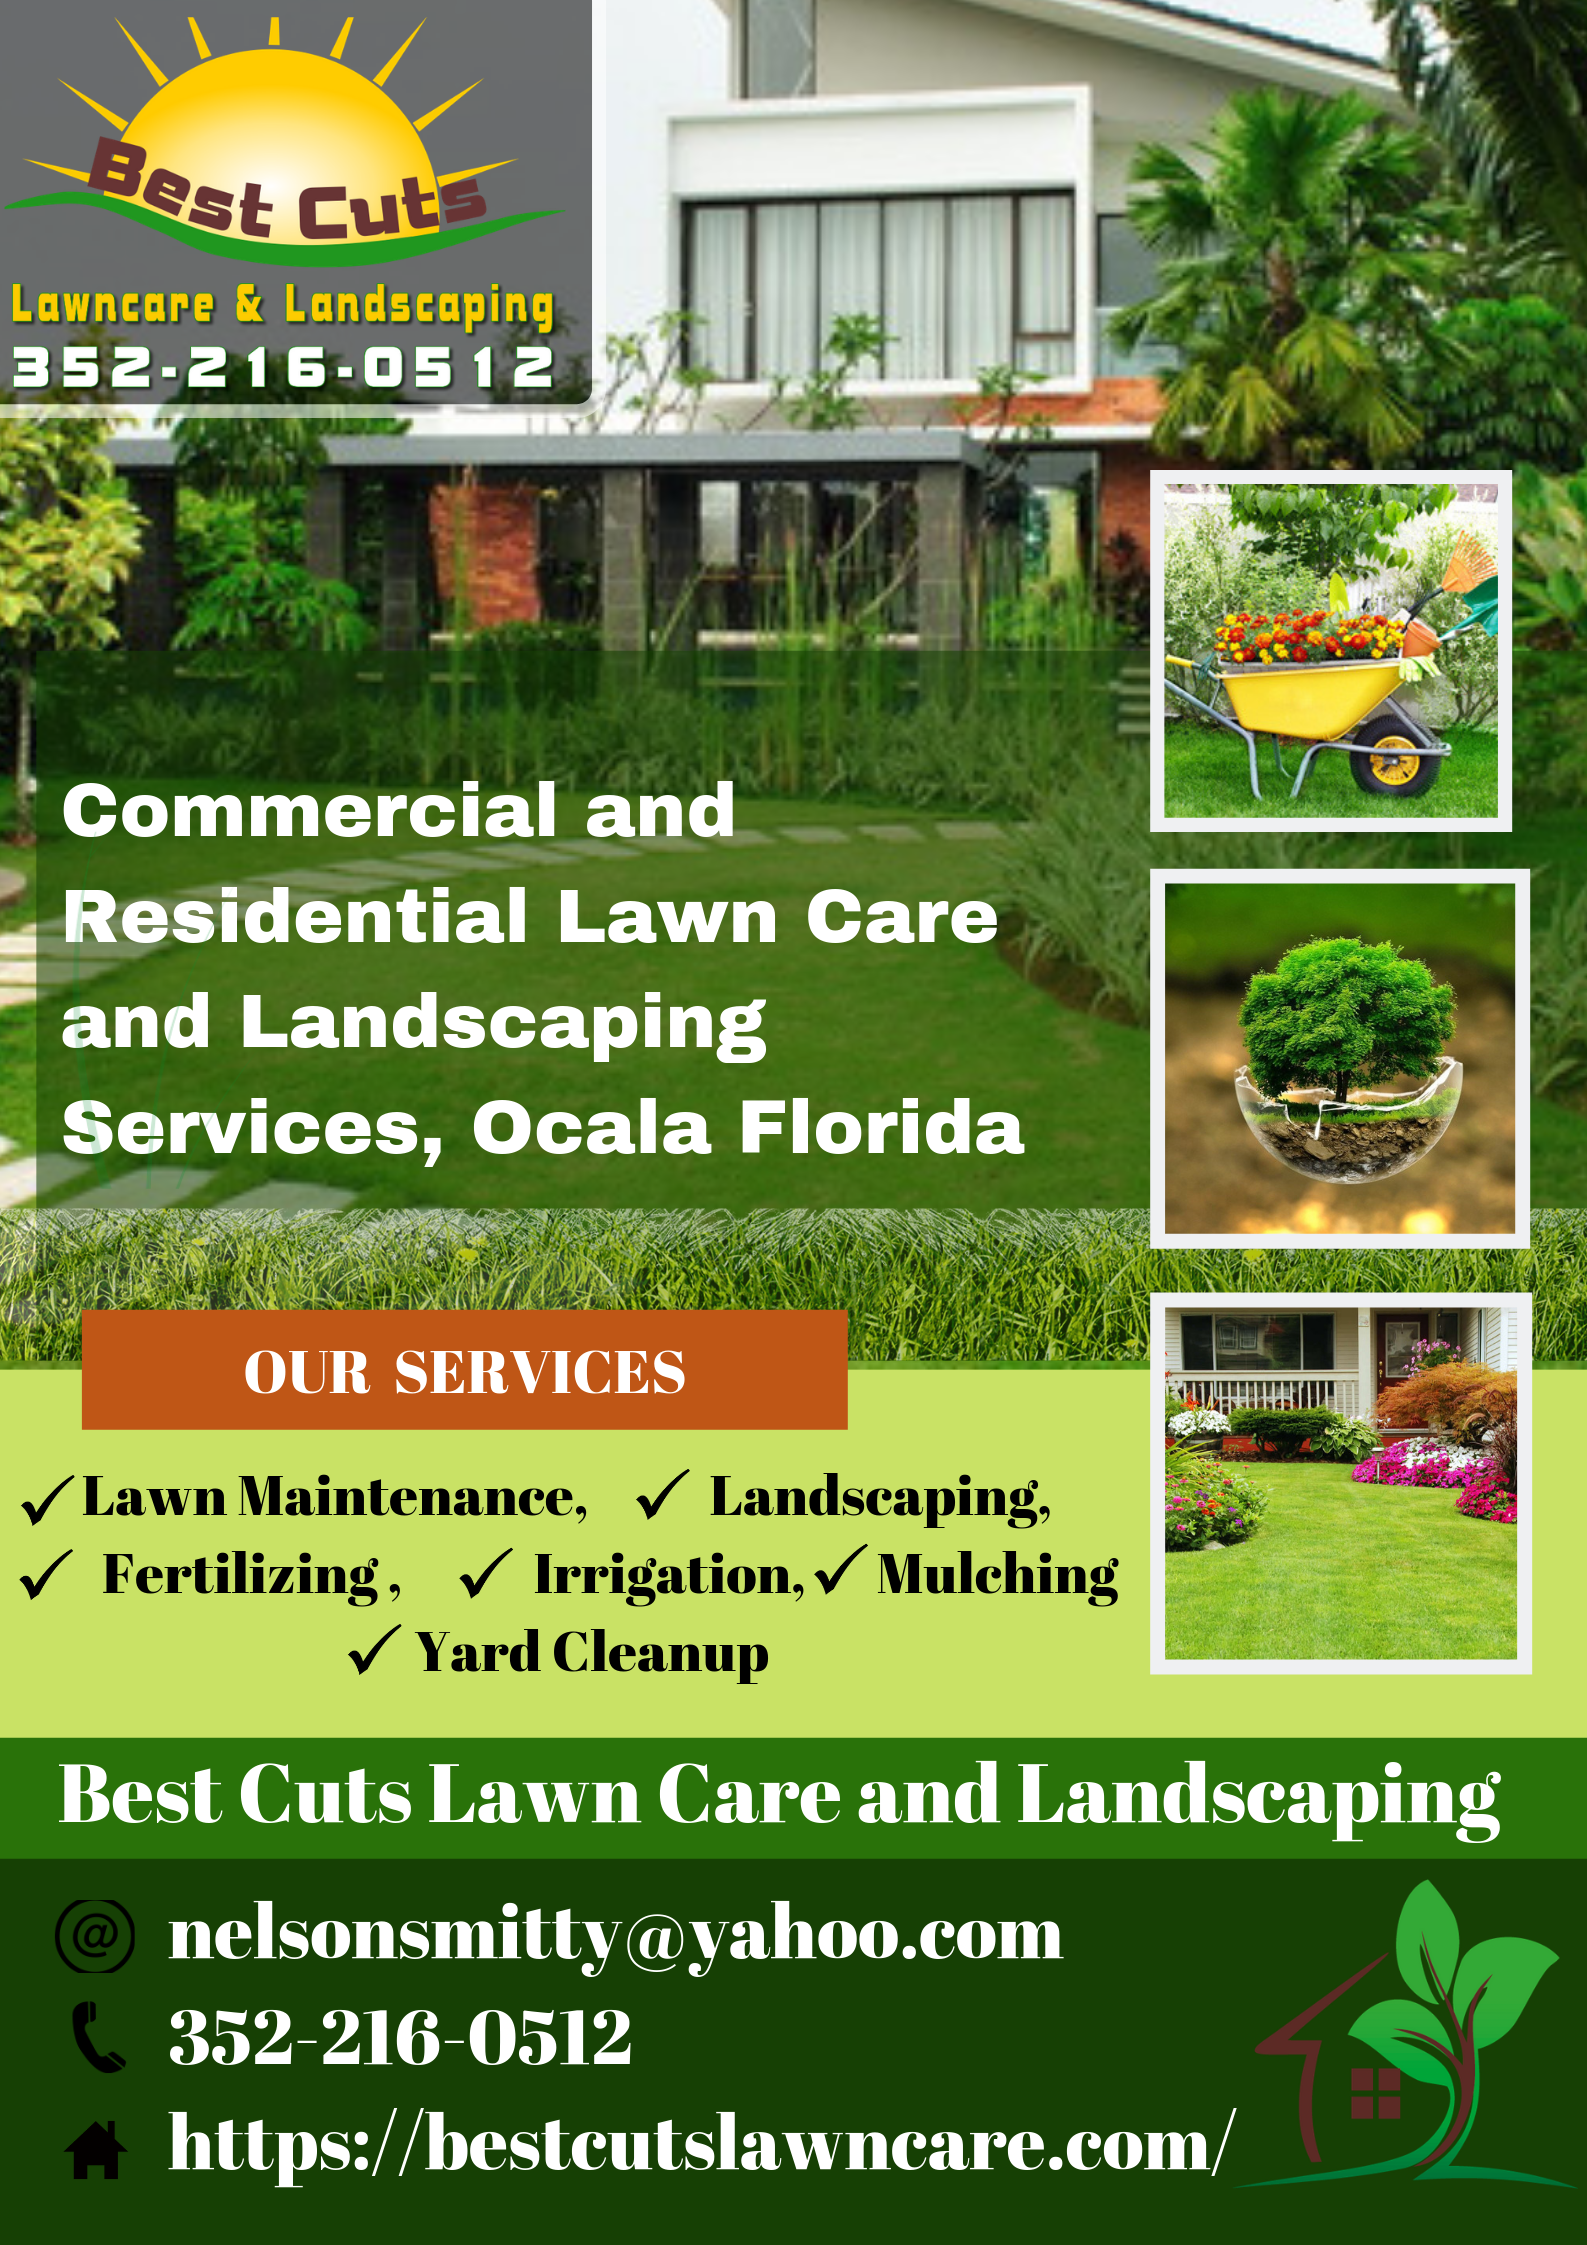 commercial lawn services near me on pin on lawn services pin on lawn services